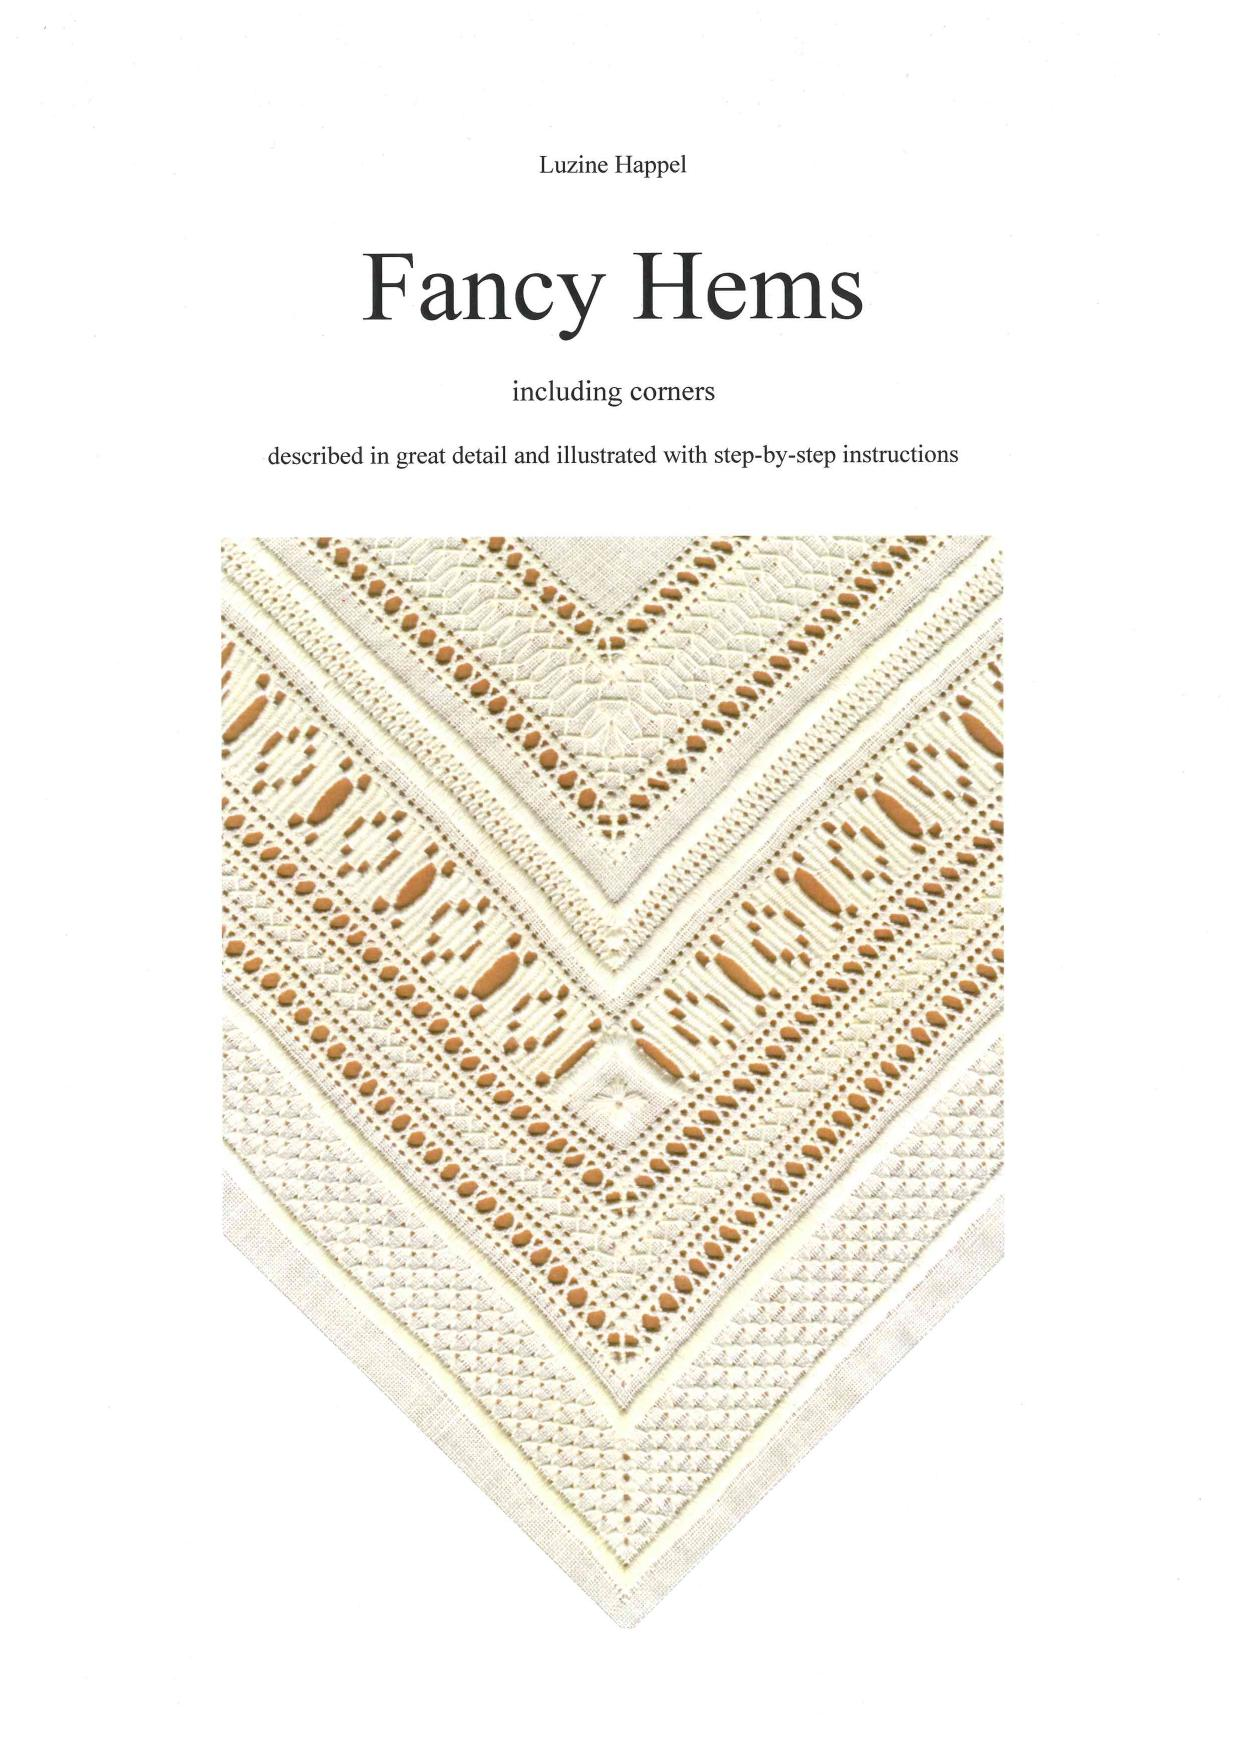 Fancy Hems 1 / 11